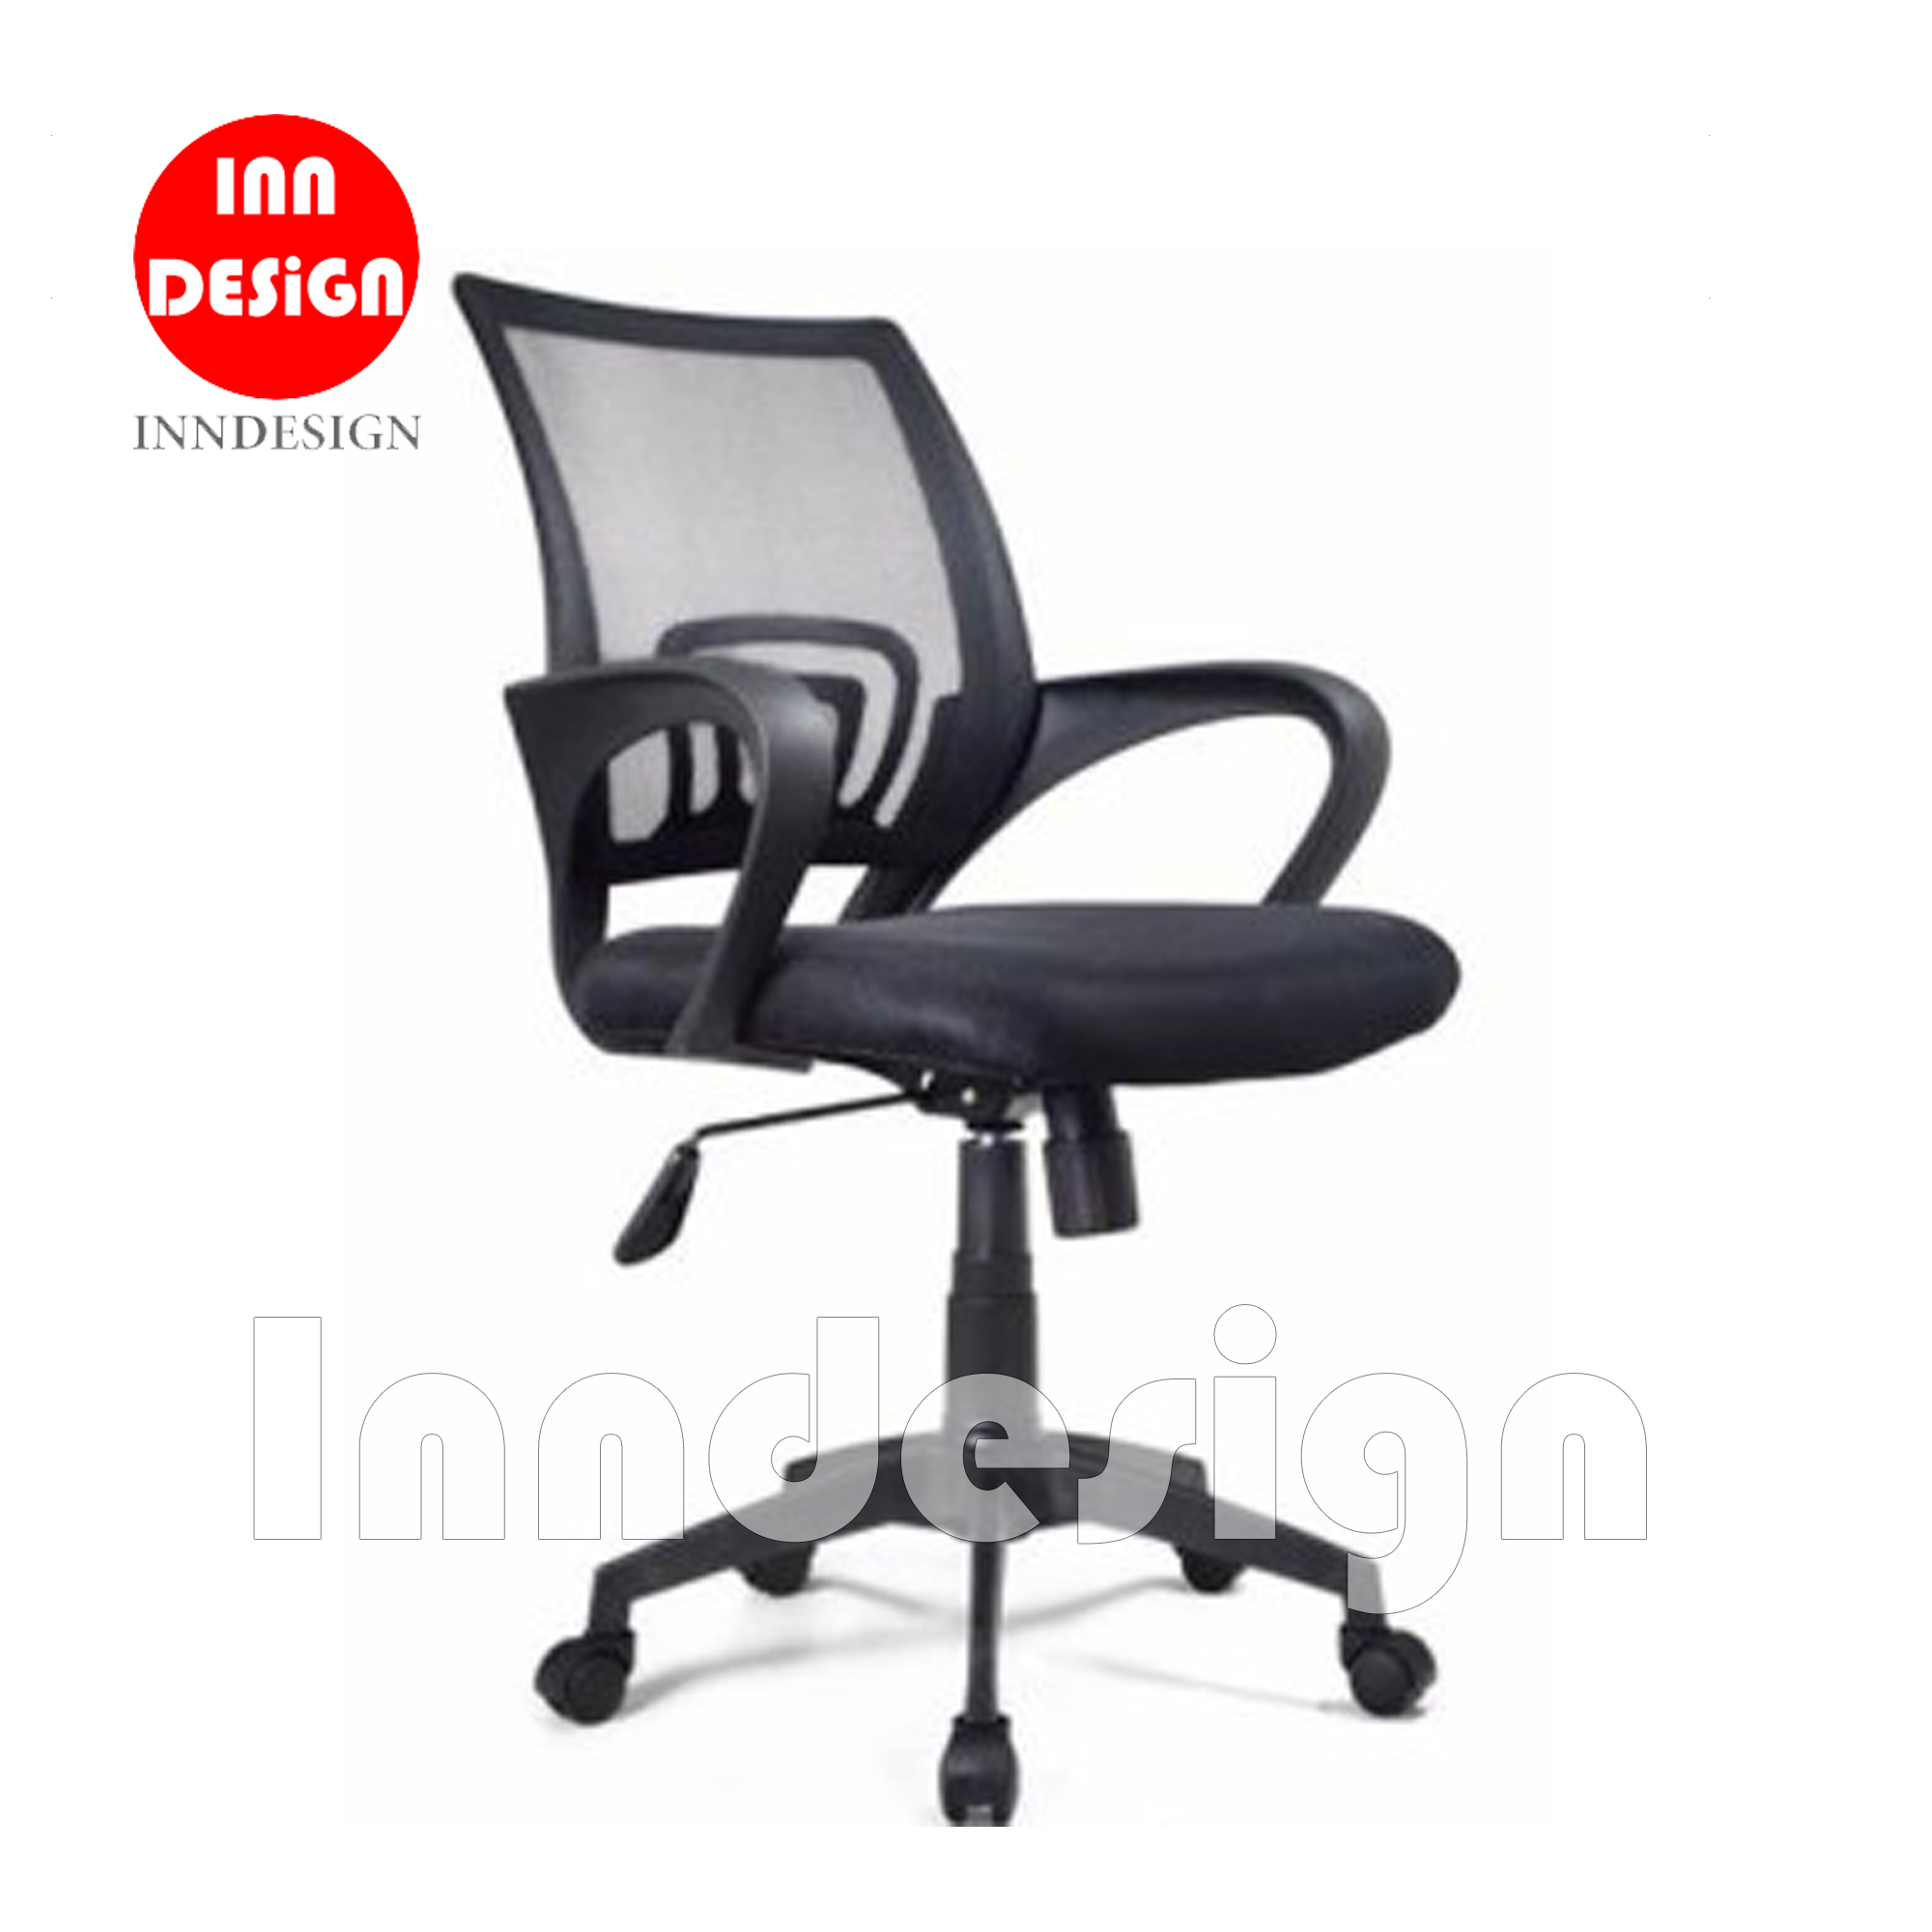 Delle Mesh Office Chair (Black)